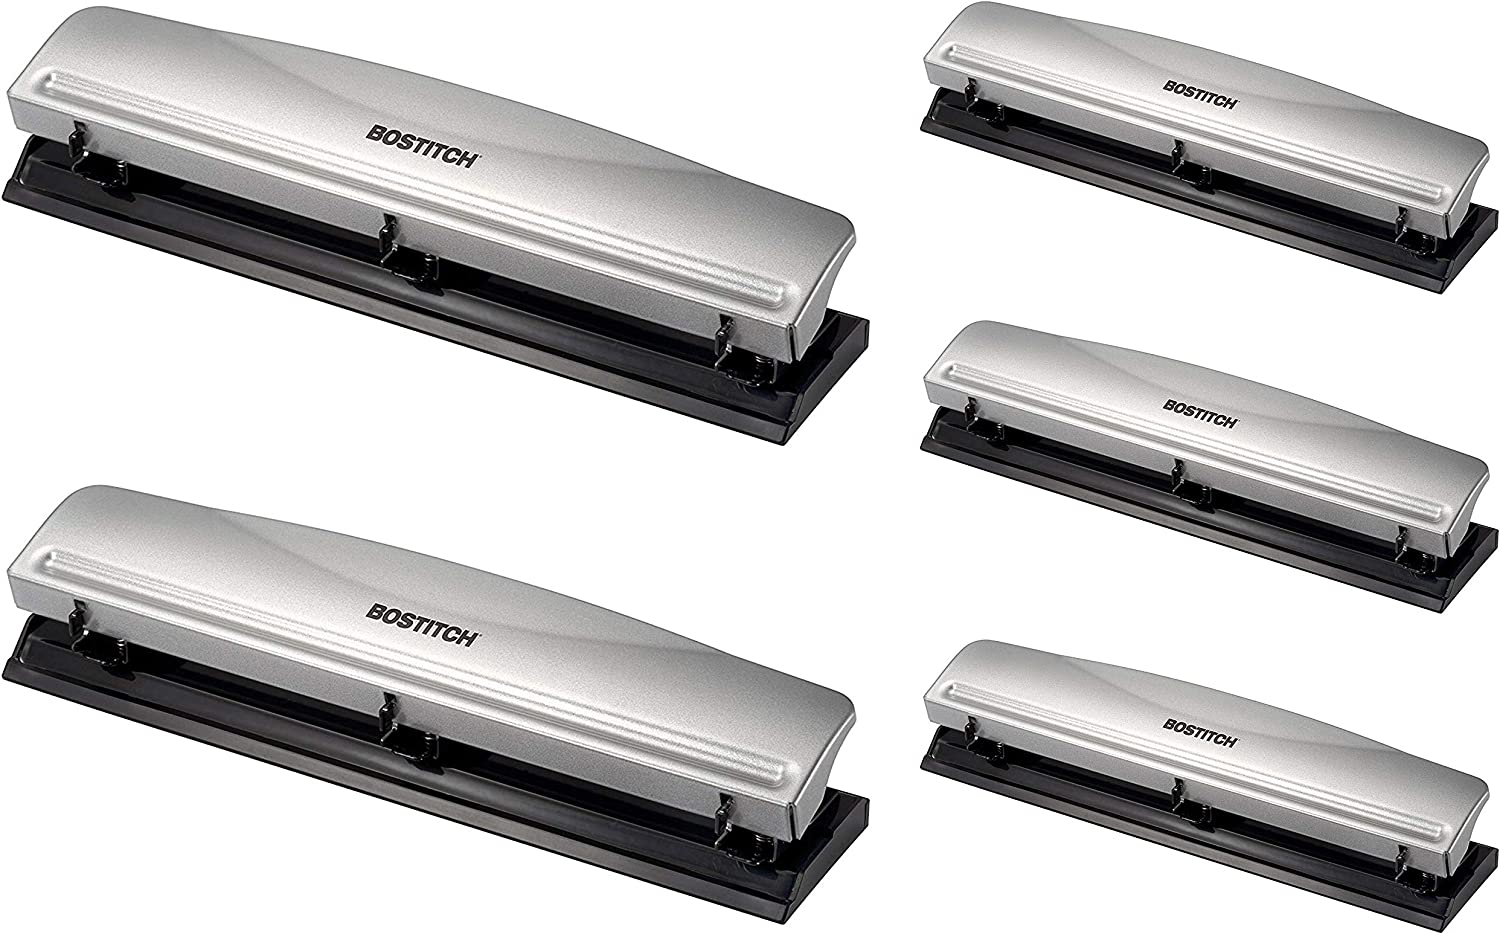 Bostitch Office HP12 3 Hole Punch 1-Pack 12 Sheet Capacity Metal,Silver